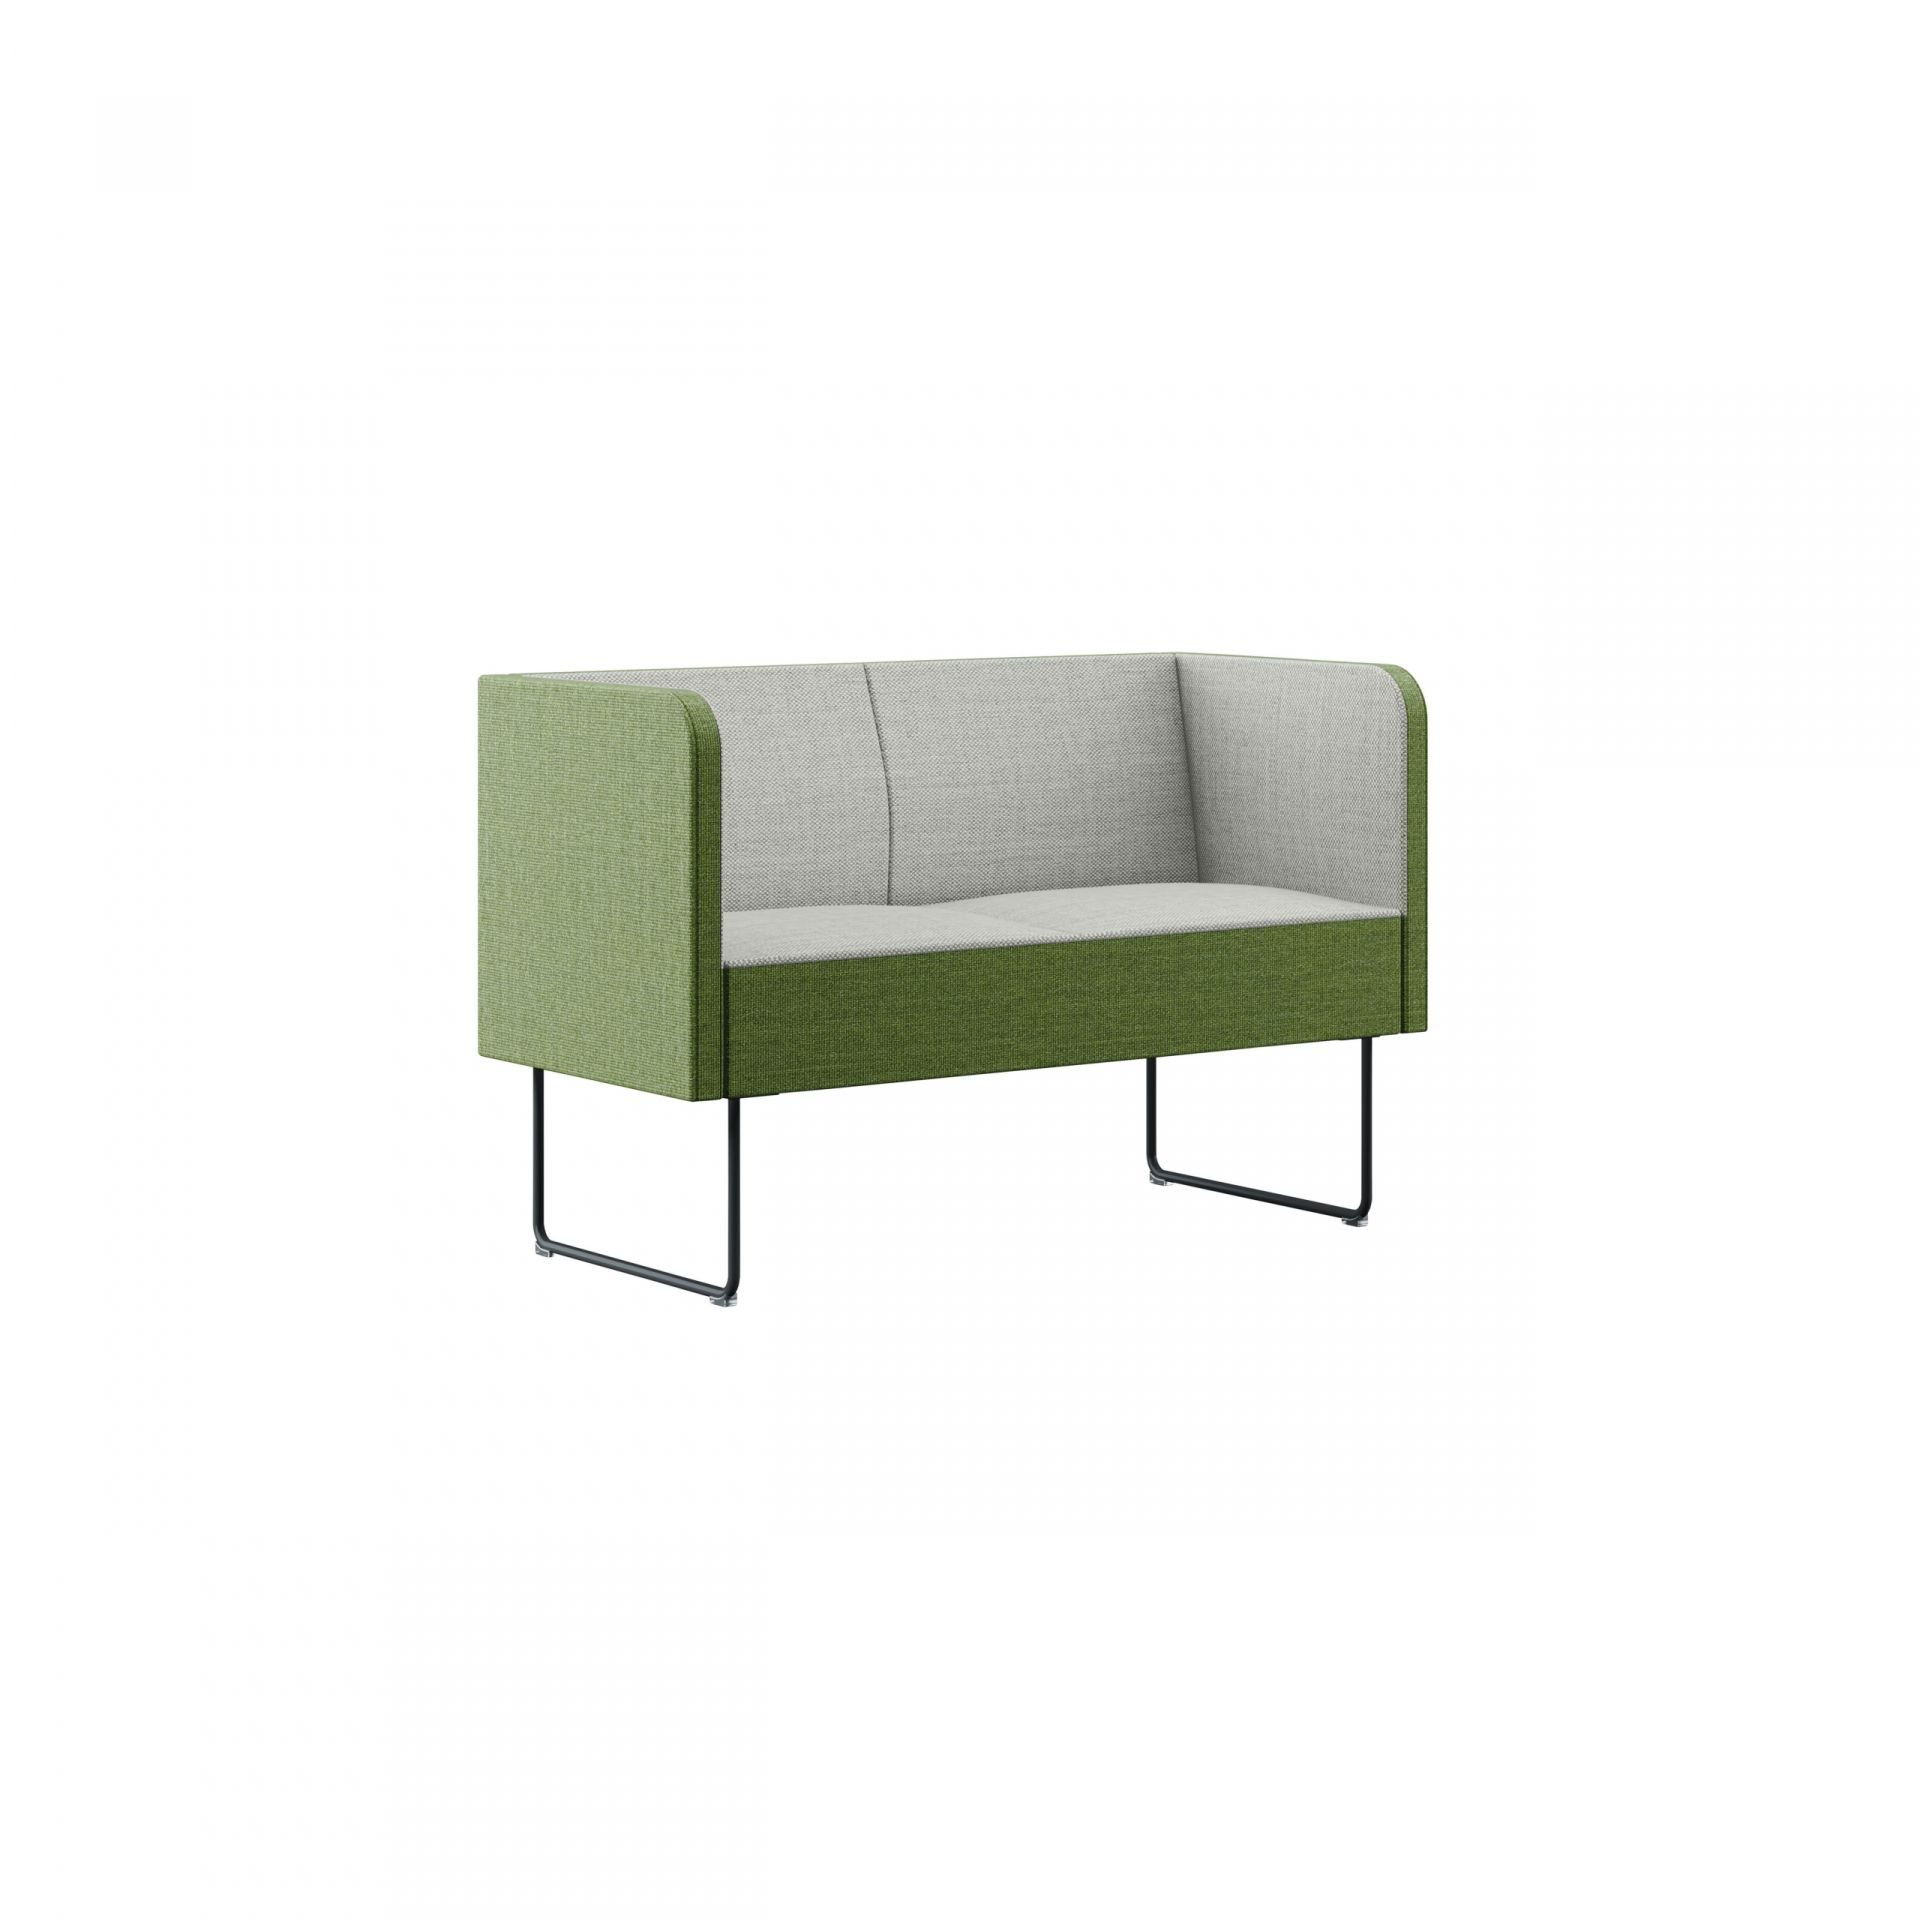 Mingle Sofa product image 3